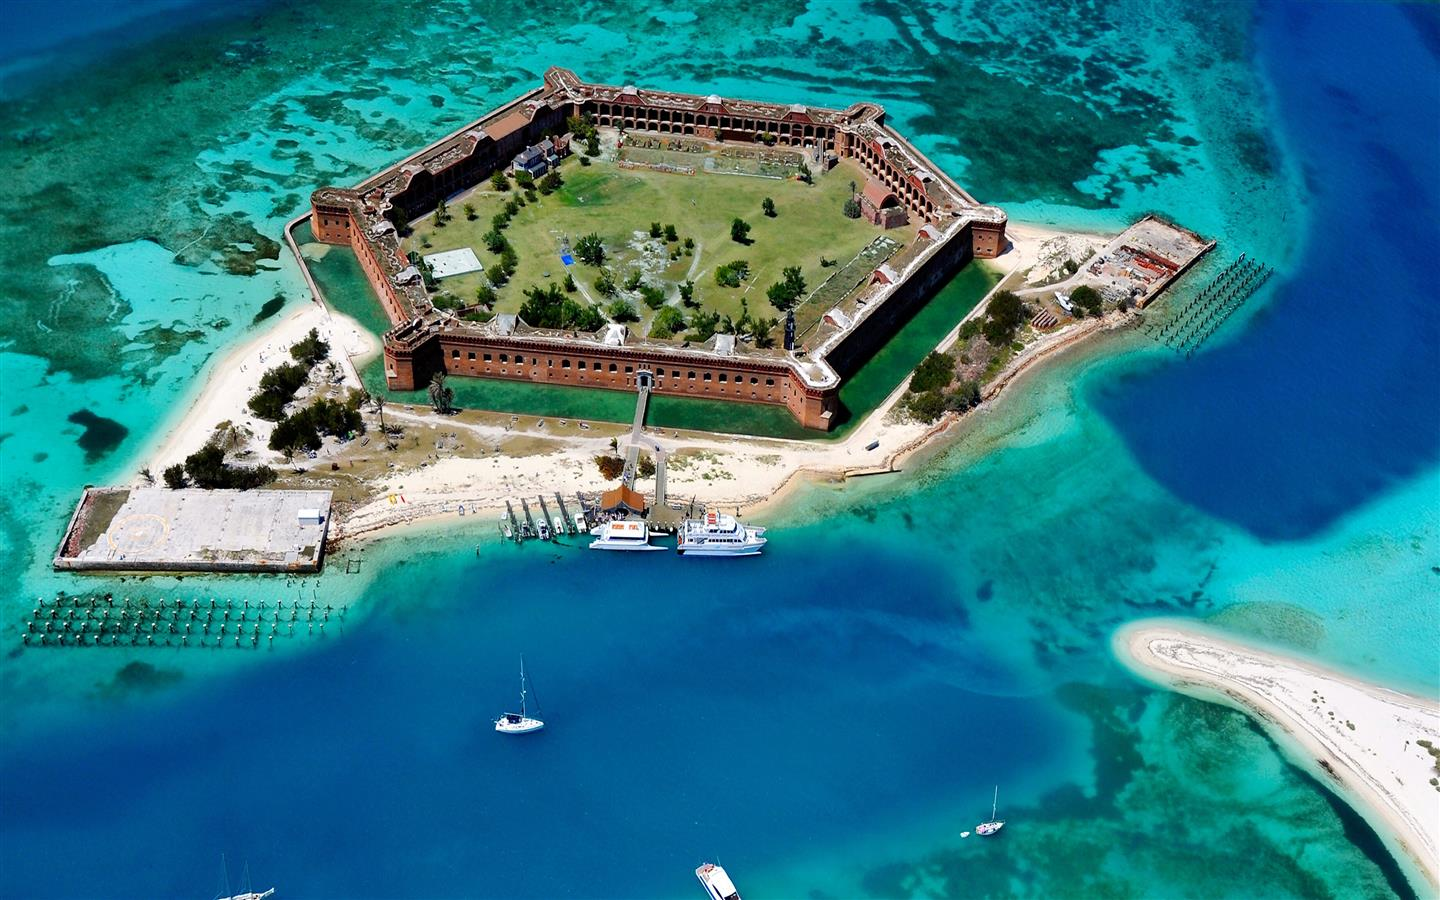 1440x900 Dry Tortugas Island Group in Florida 4K Wallpaper